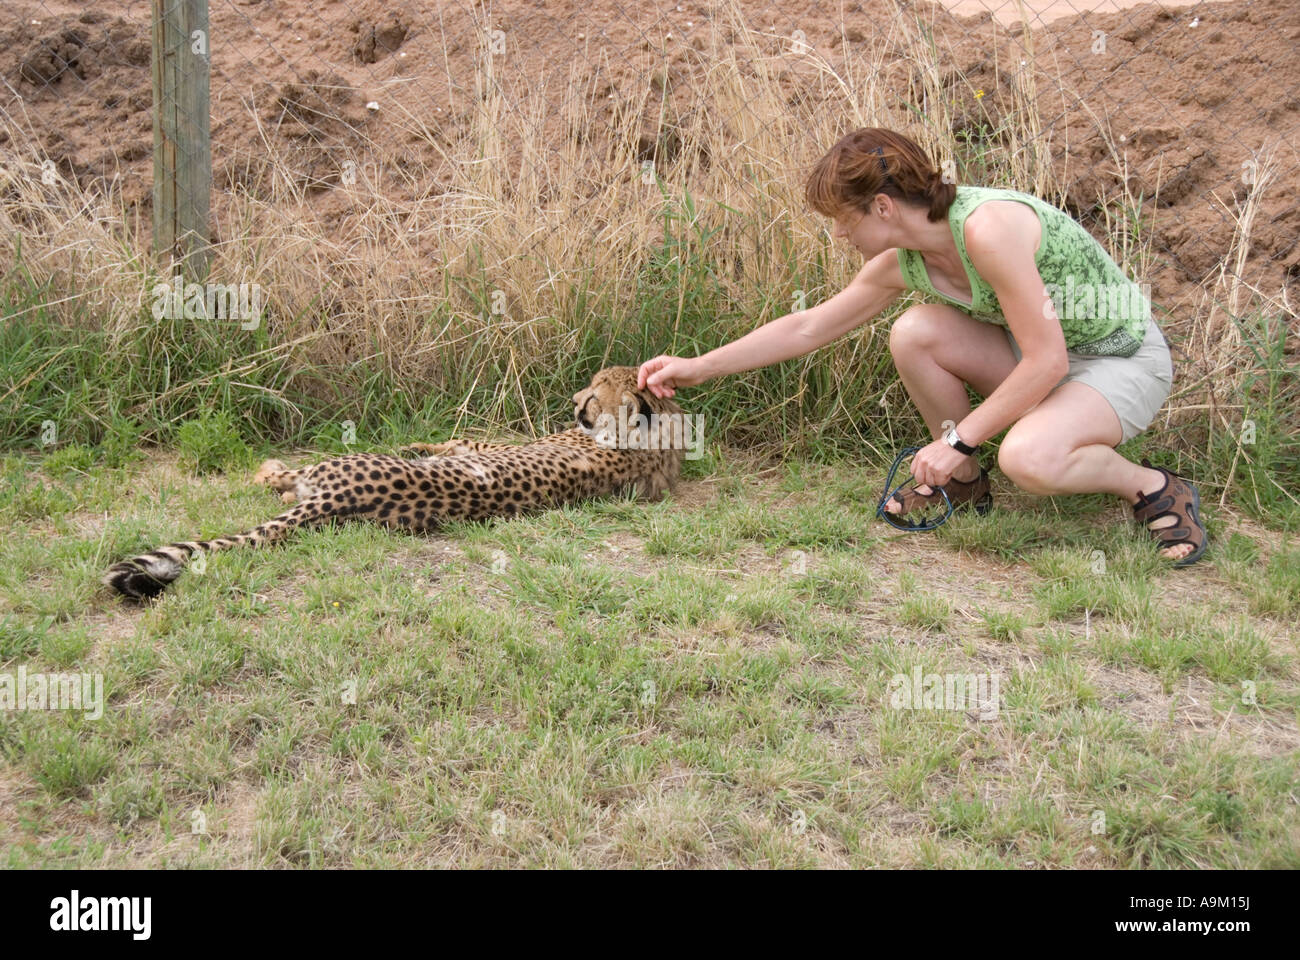 Does he bite? Tentatively stroking a cheetah in Namibia (one of sequence) - Stock Image